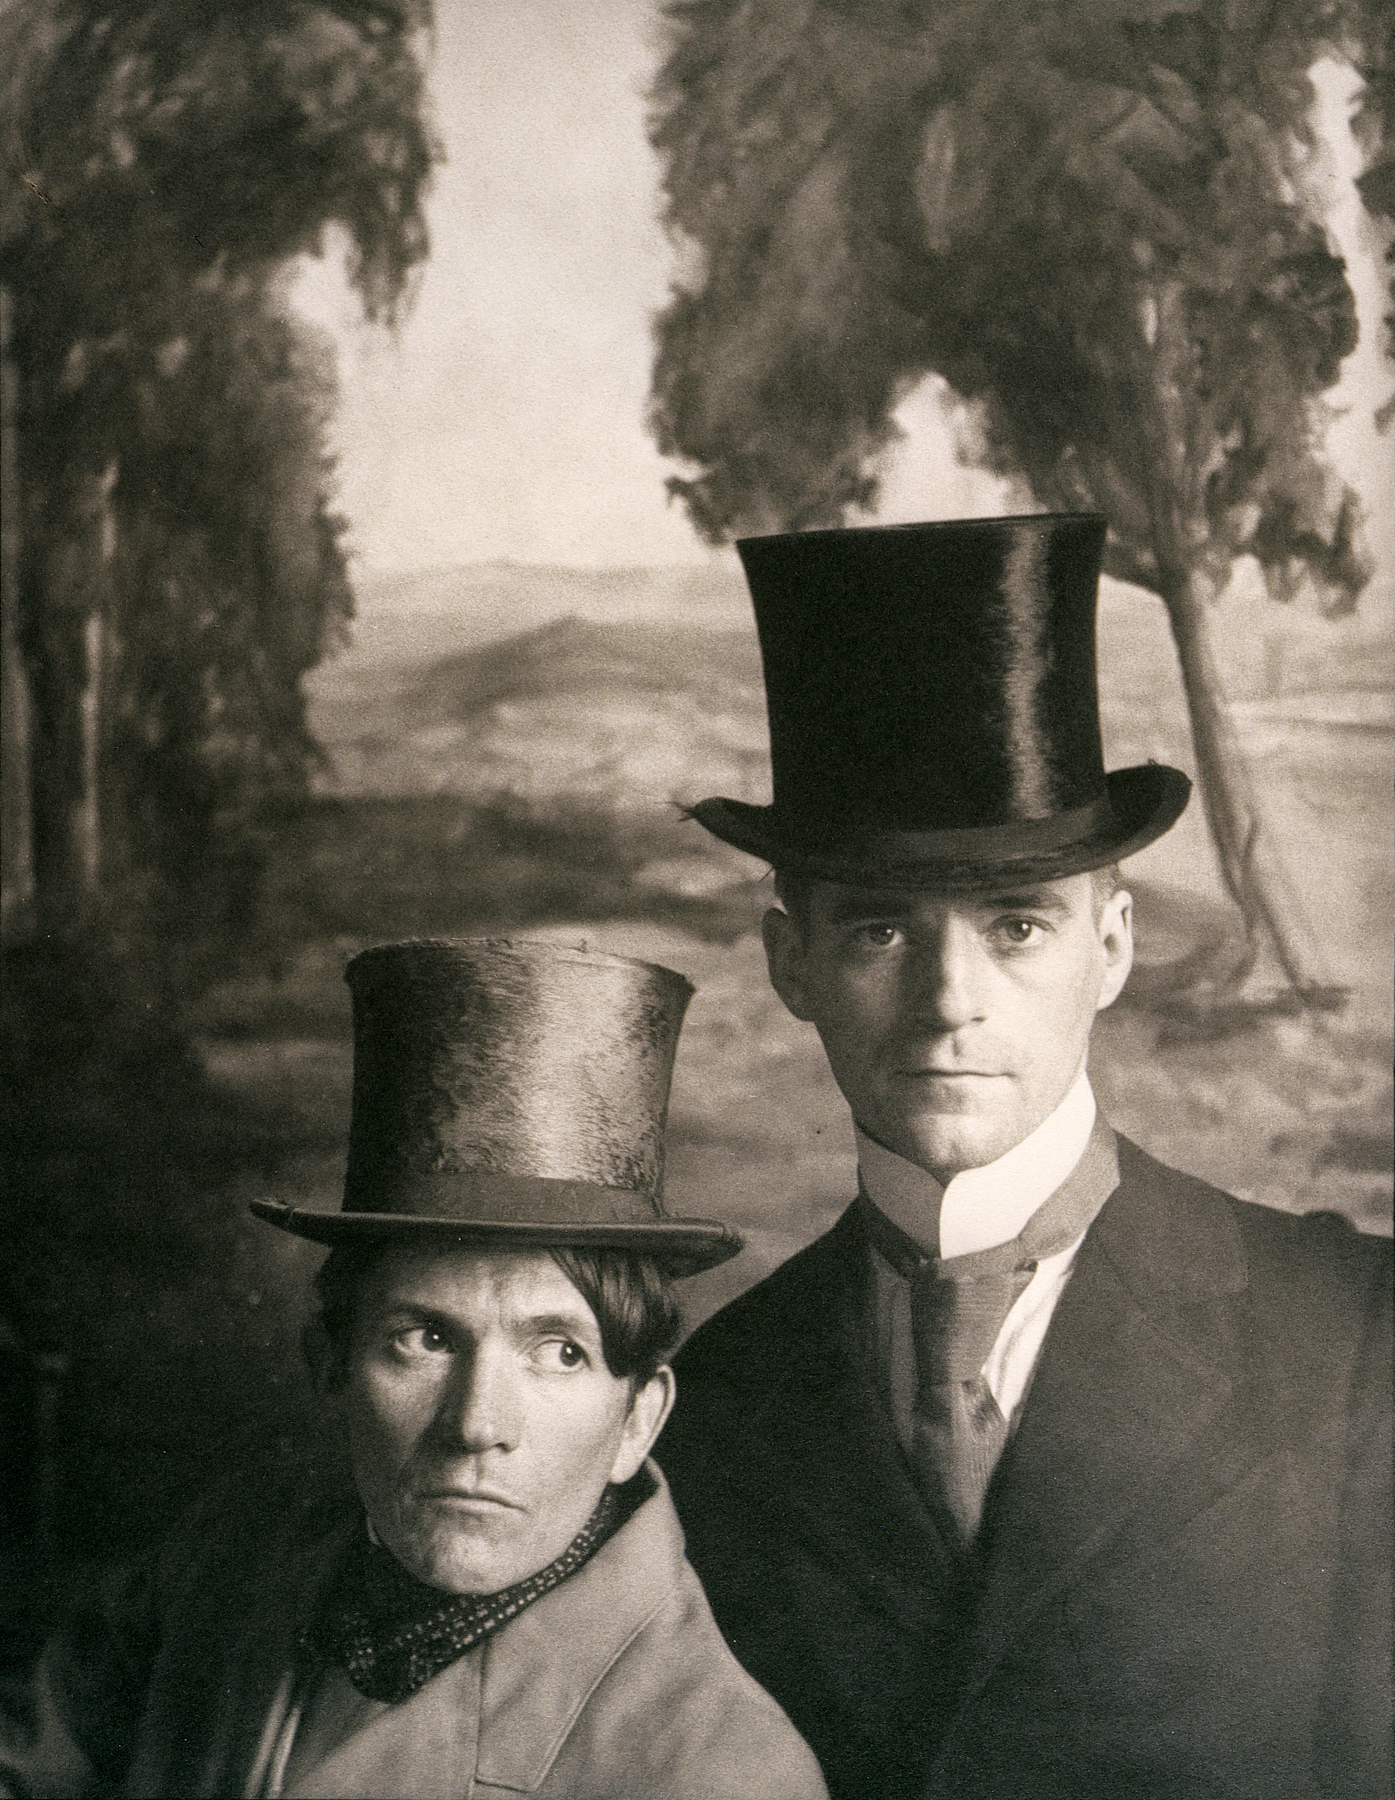 McDermott & McGough,  Portrait of the Artists (with Top Hats), 1865,  Palladium, 1991 (Courtesy of the Artists)